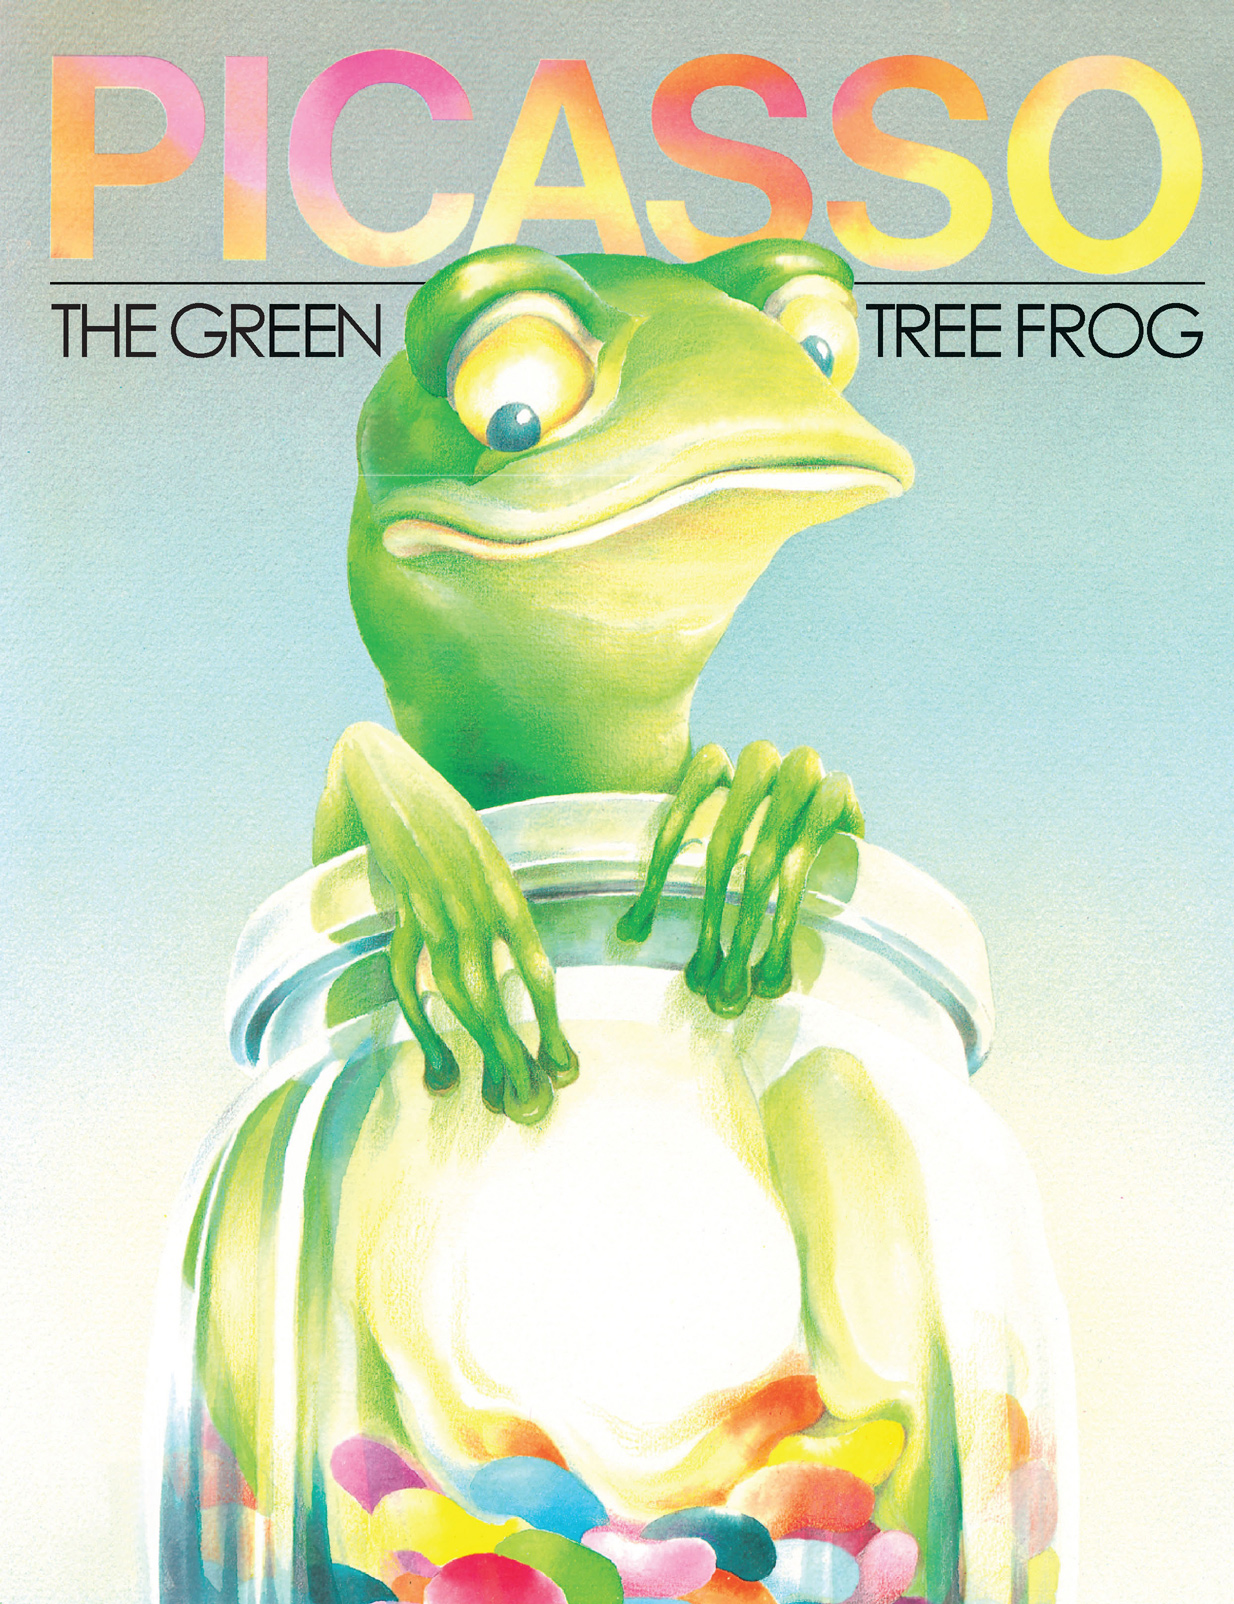 Picasso the Green Tree Frog By: Amanda Graham,John Siow